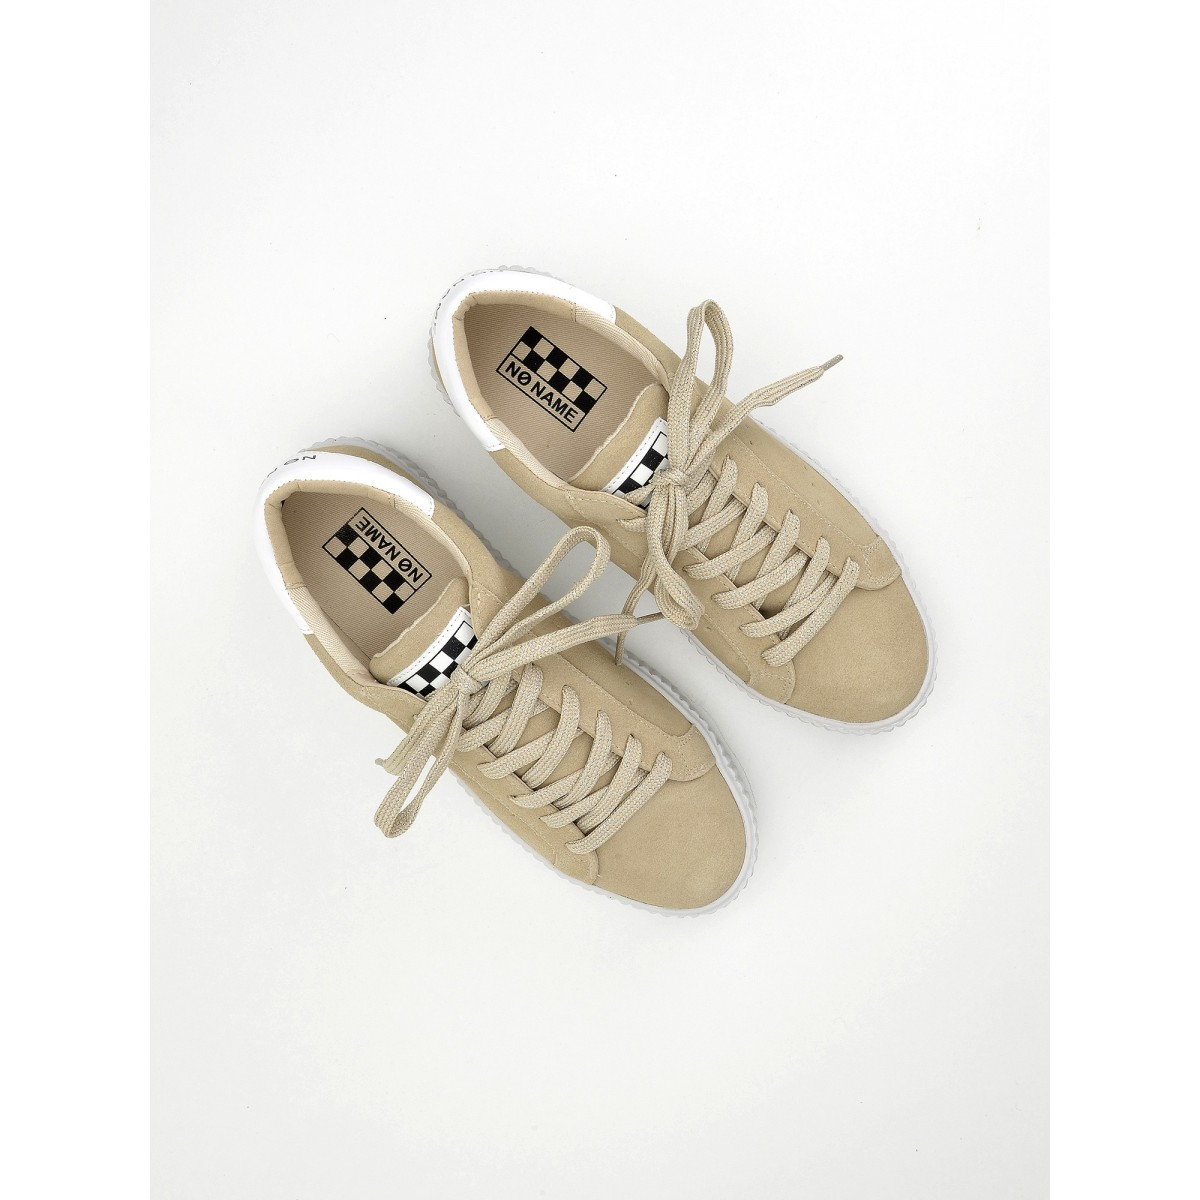 No Name Picadilly Sneaker - Suede - Sable